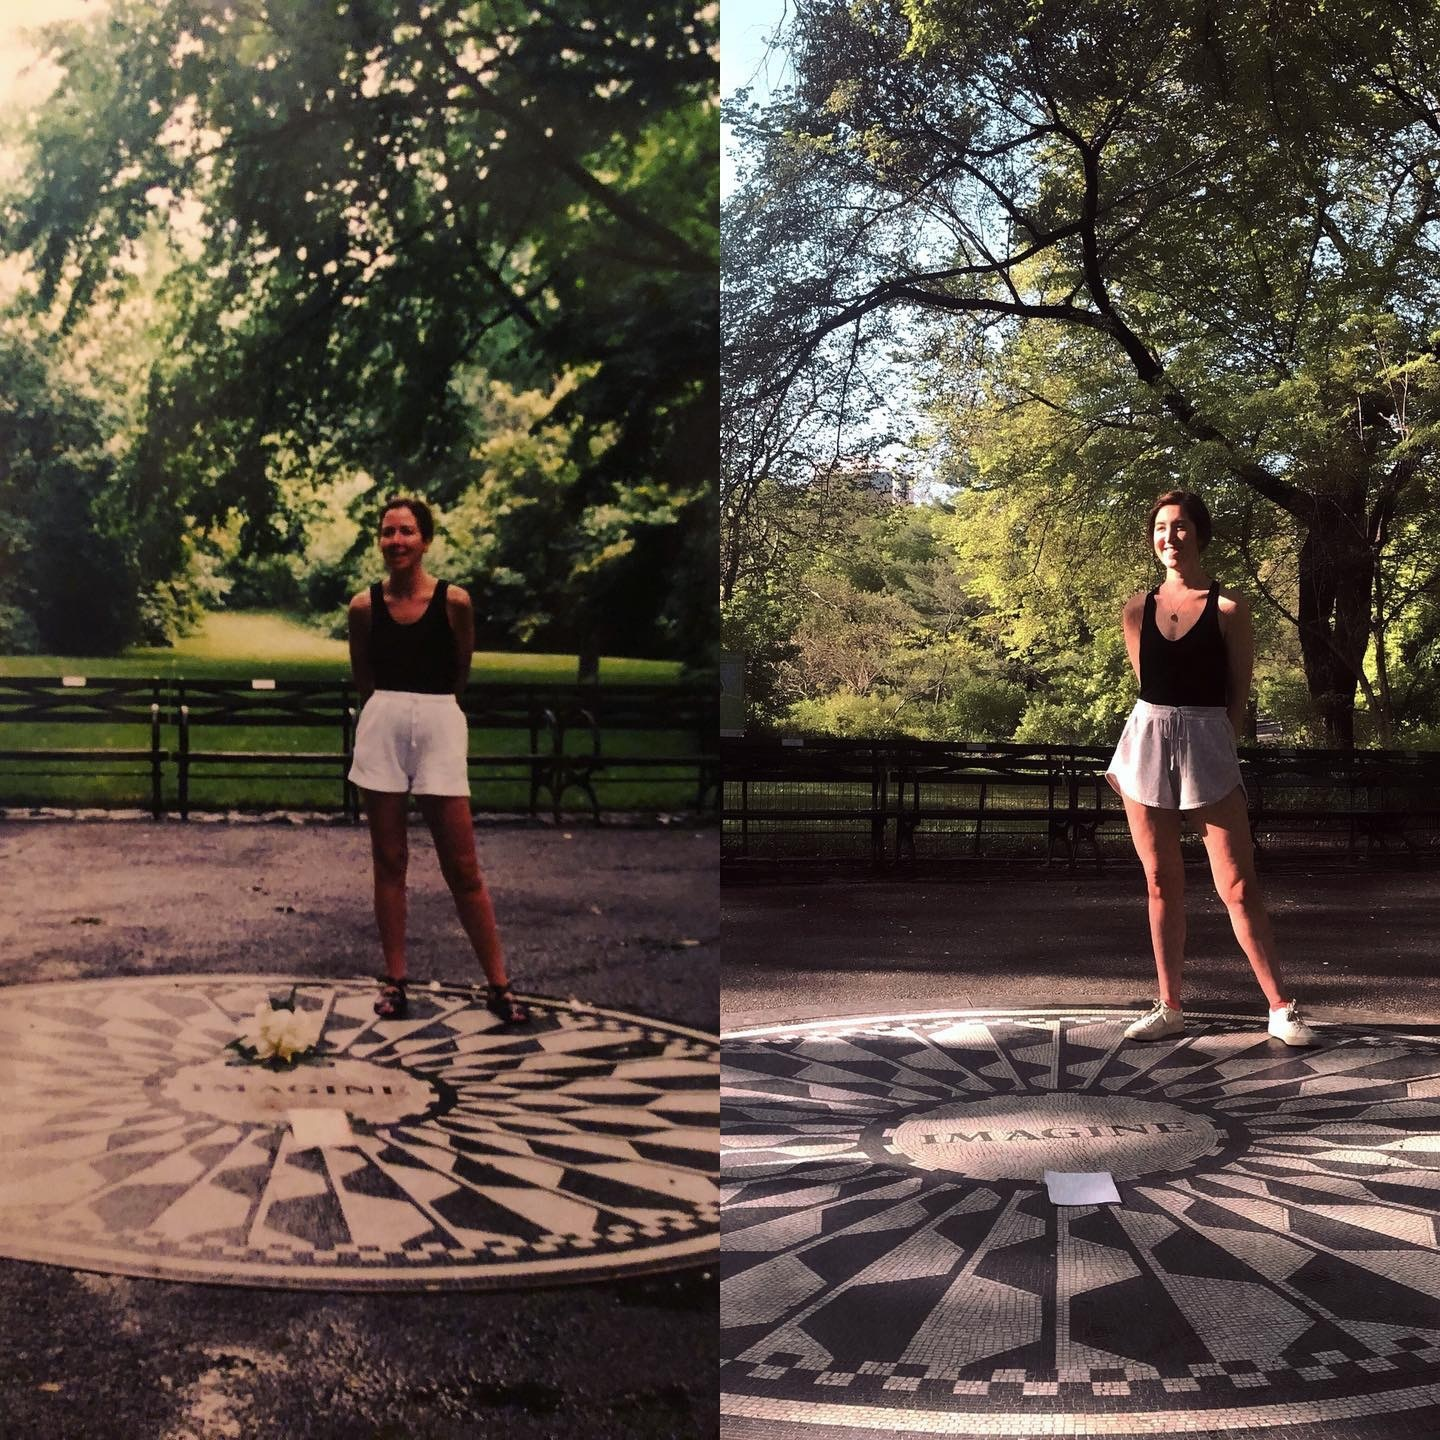 MomThenMeNow co-founder Cassie Levine recreated a photograph 30 years after her mom struck this pose at the Imagine Circle in the Strawberry Fields Memorial of Central Park.